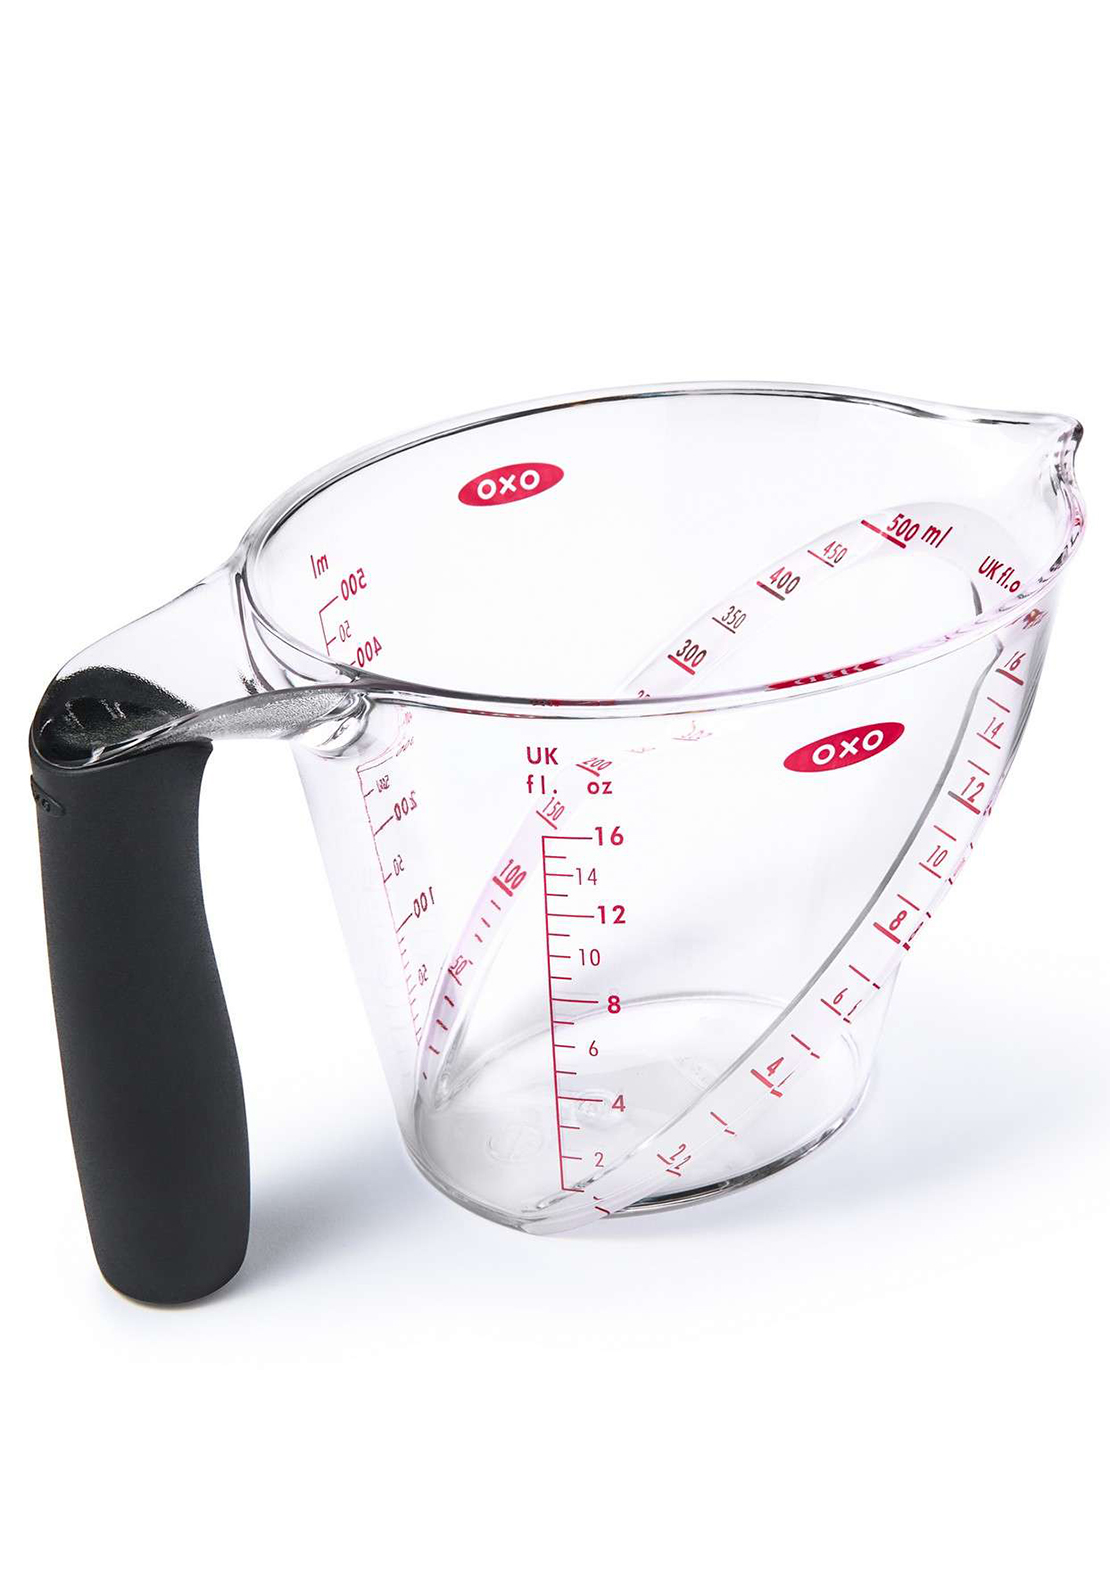 OXO Goodgrips Angled Measuring Jug, 500ml